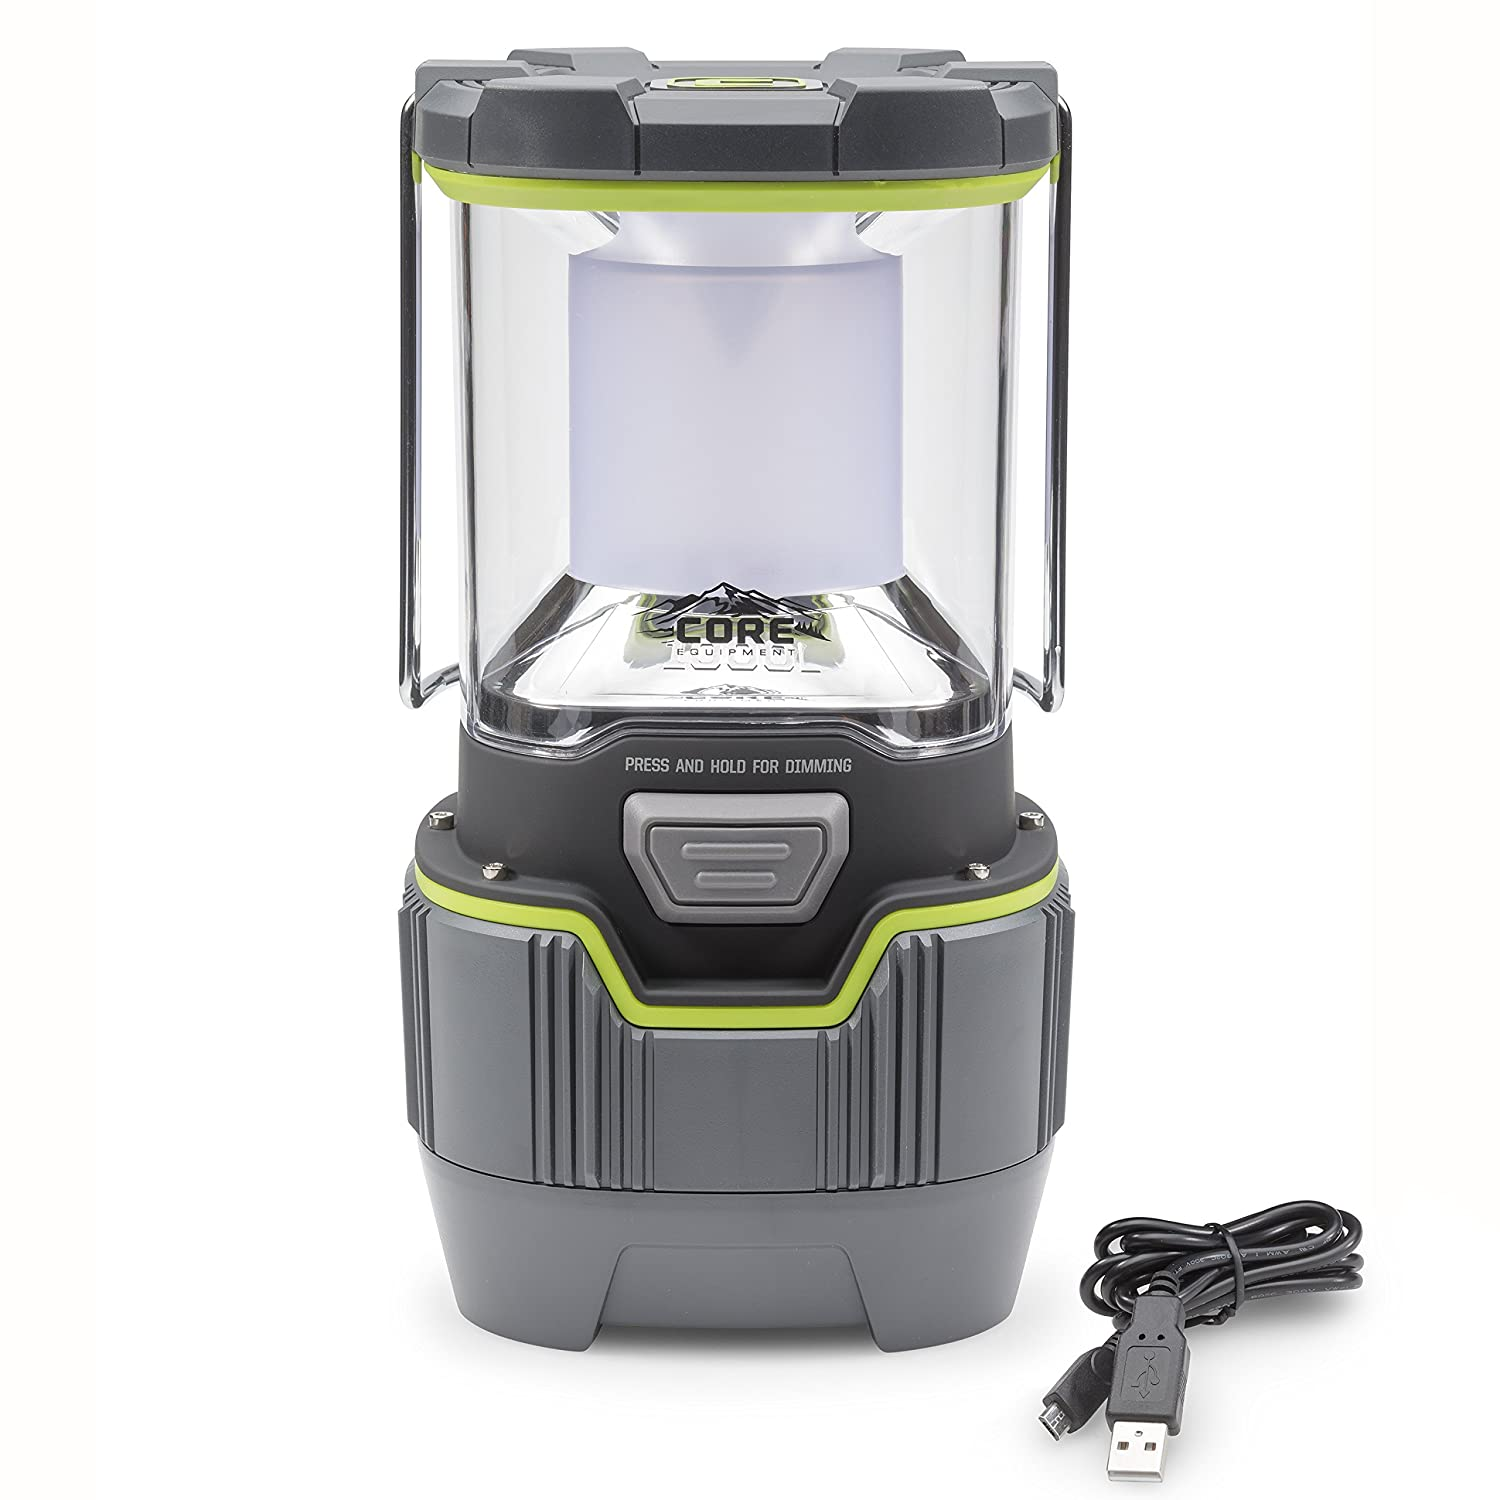 2. CORE 1000 Lumen CREE LED Rechargeable Camping Emergency Lantern